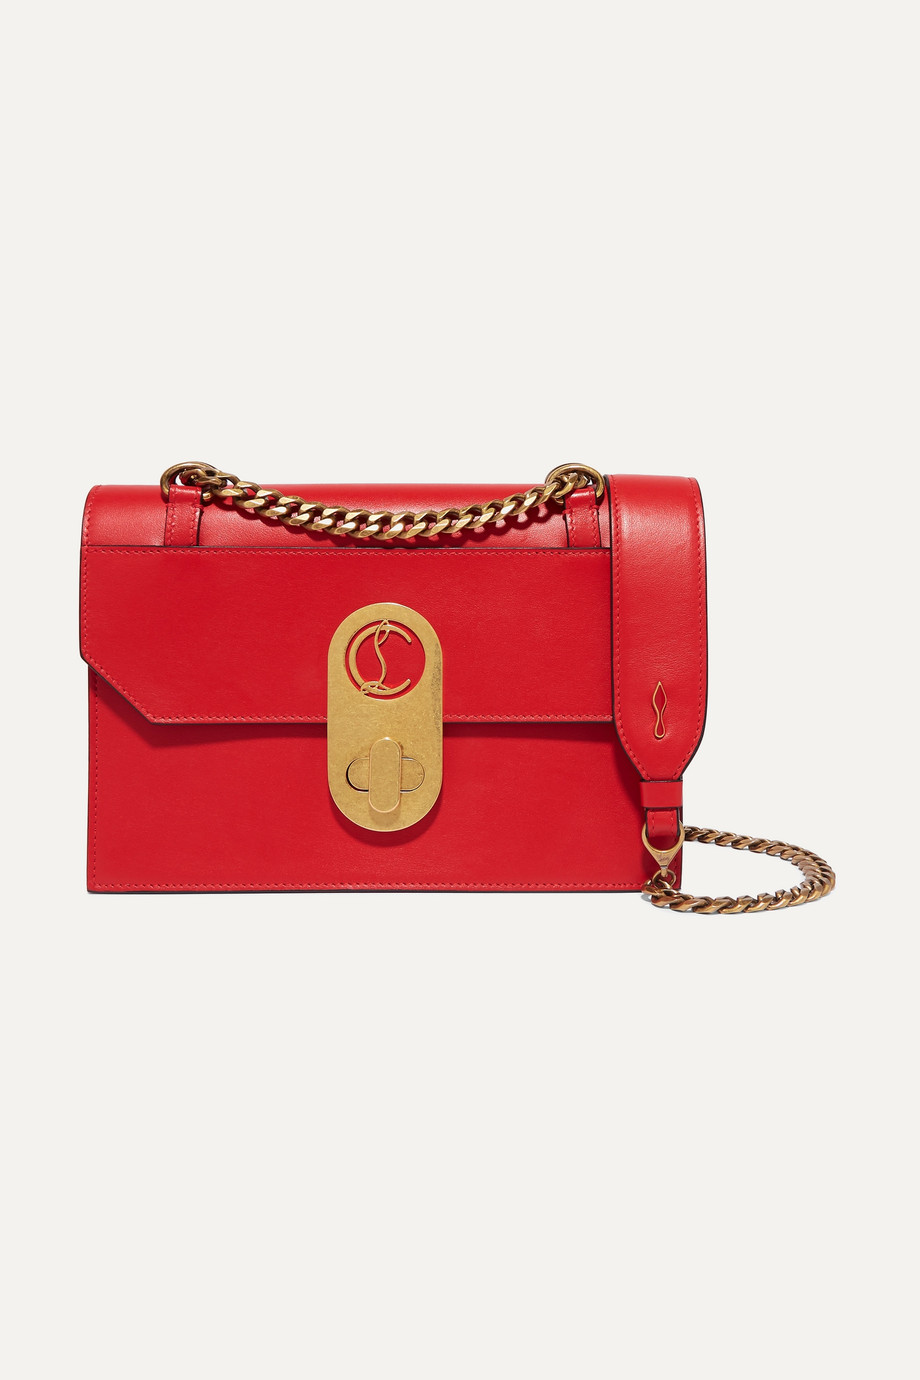 Christian Louboutin Elisa small leather shoulder bag